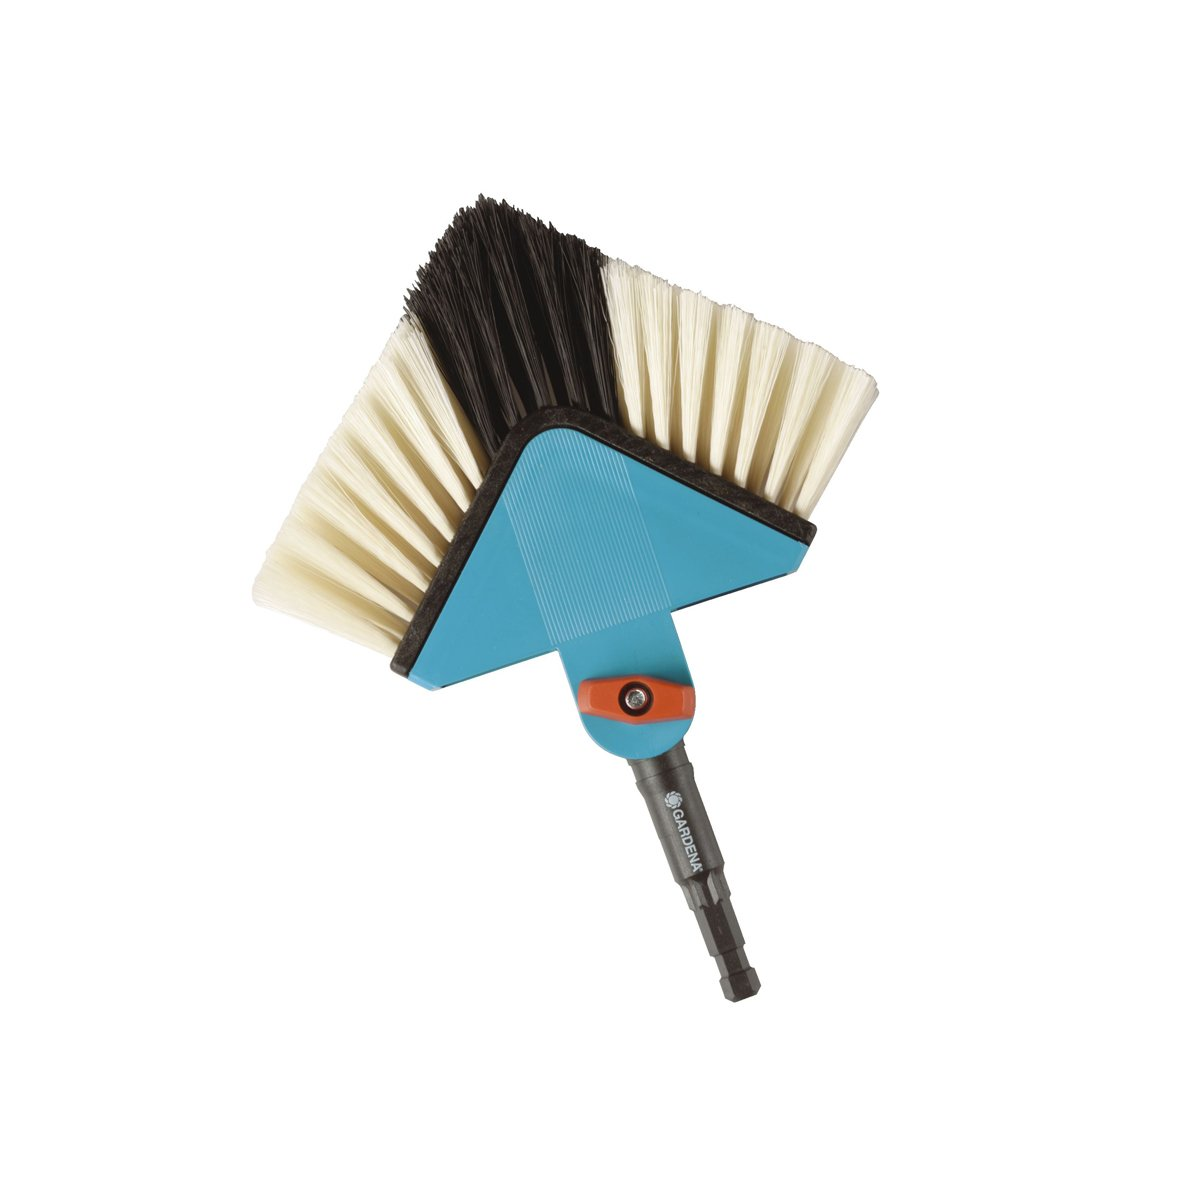 Gardena 3633 Combisystem Overhead Cleaning Angle Broom Head